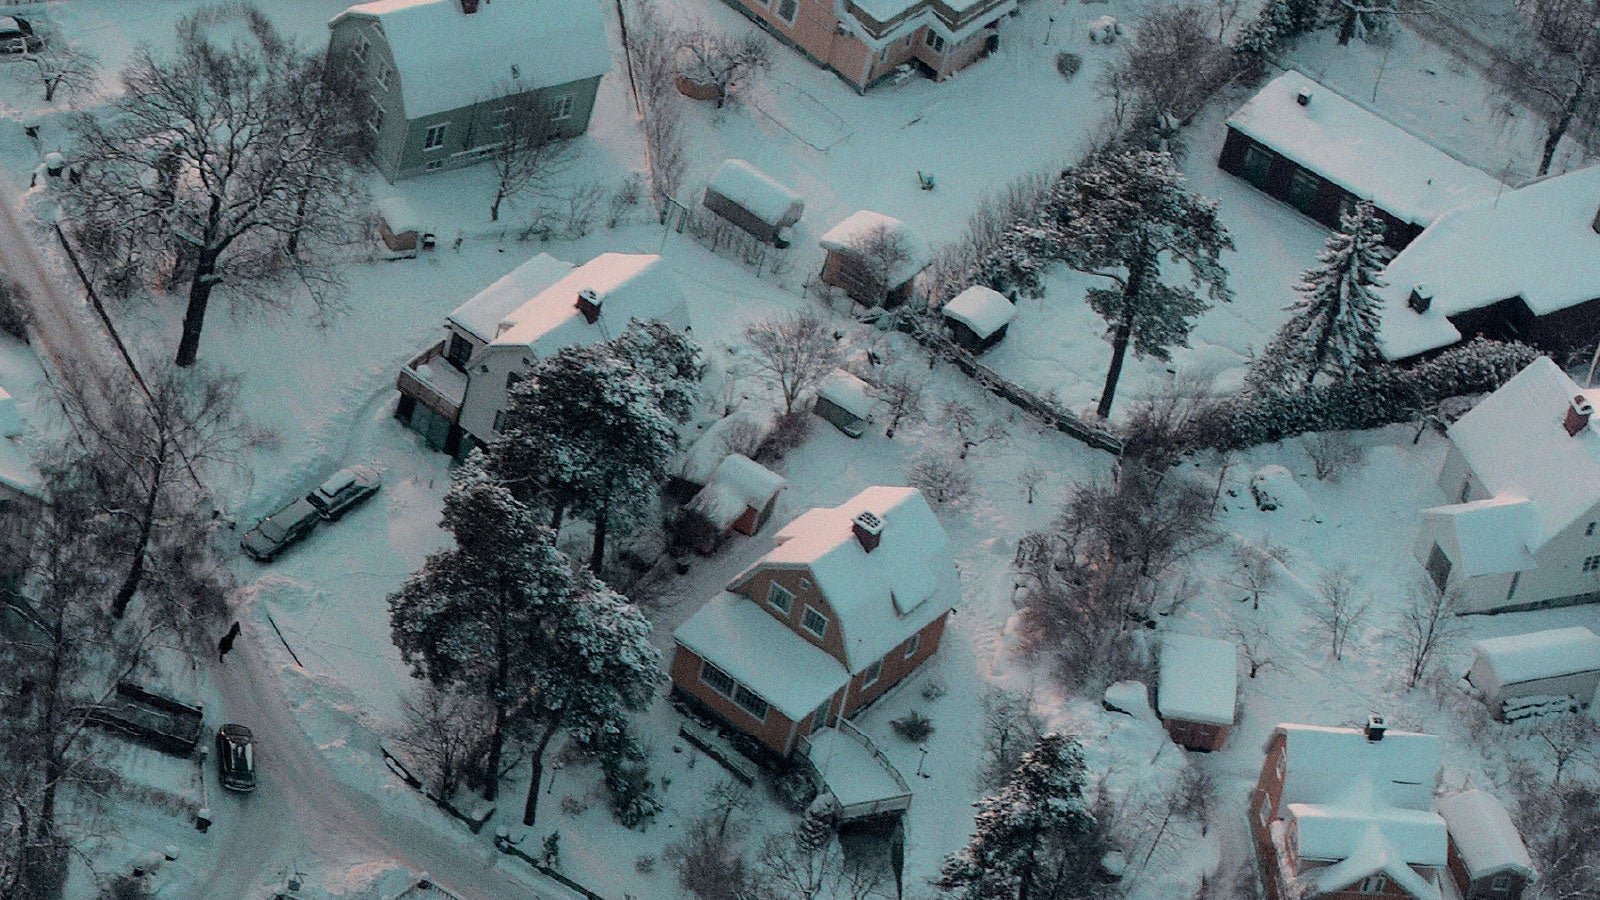 Aerial photograph of an American town covered in snow.